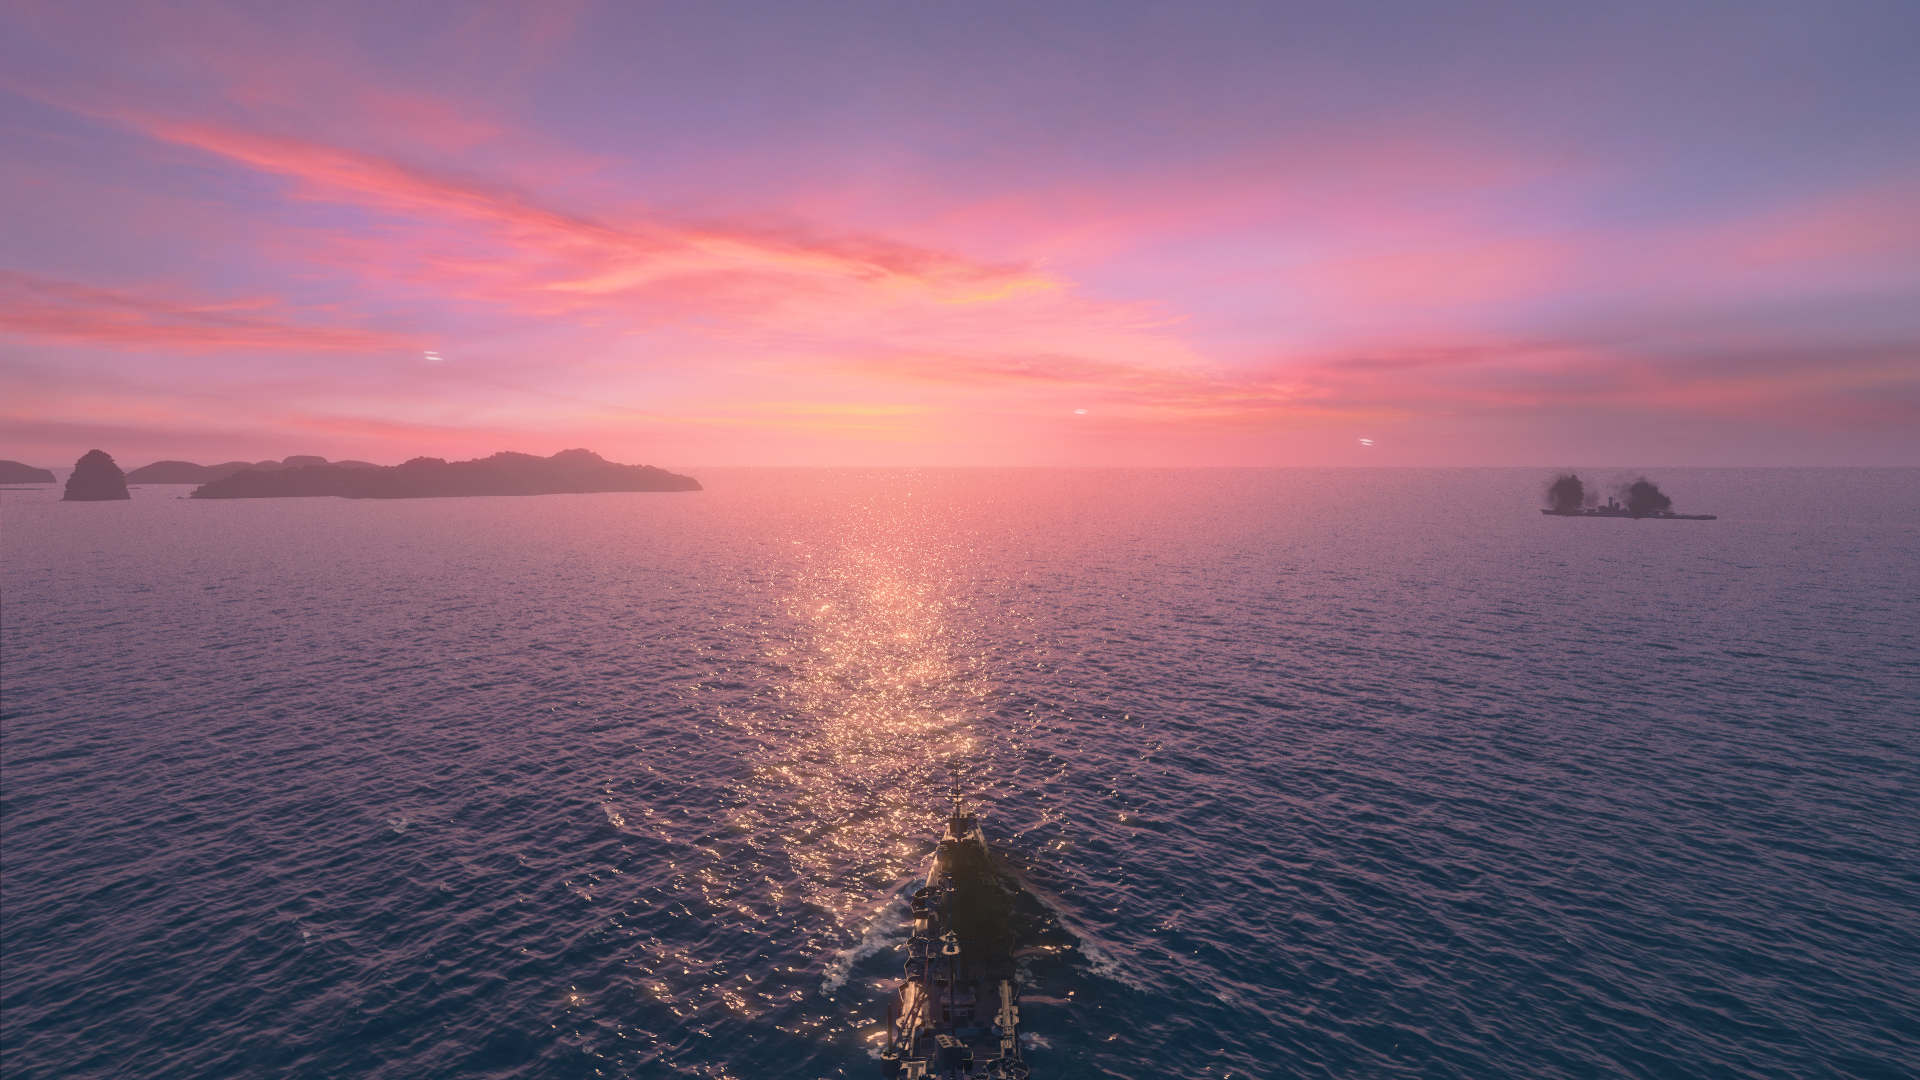 Pacific-Sunset-World-of-Warships-1920-x-1080-OC-wallpaper-wp3808993